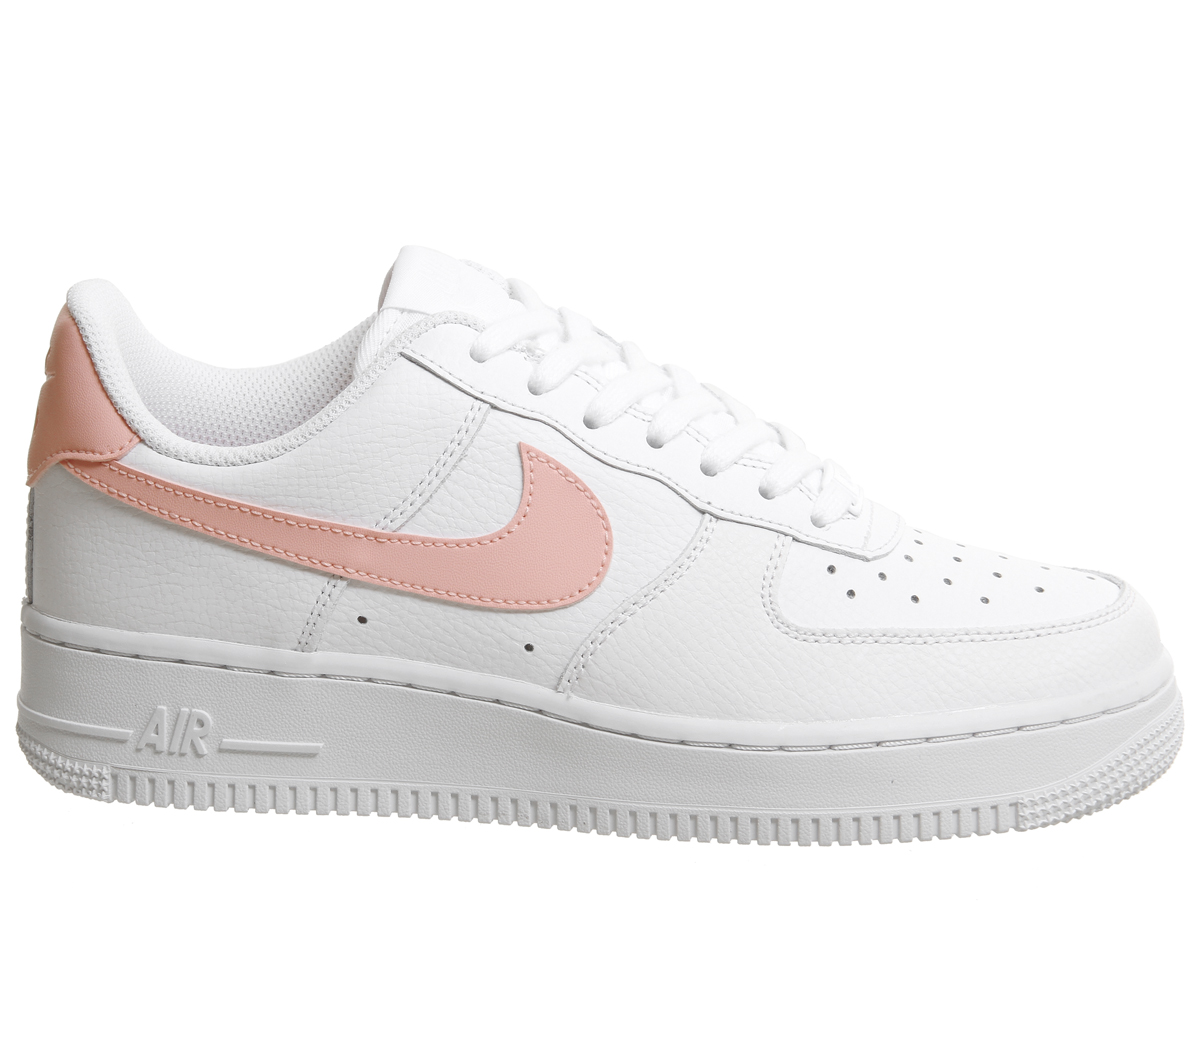 Nike Air Force 1 '07 Patent White